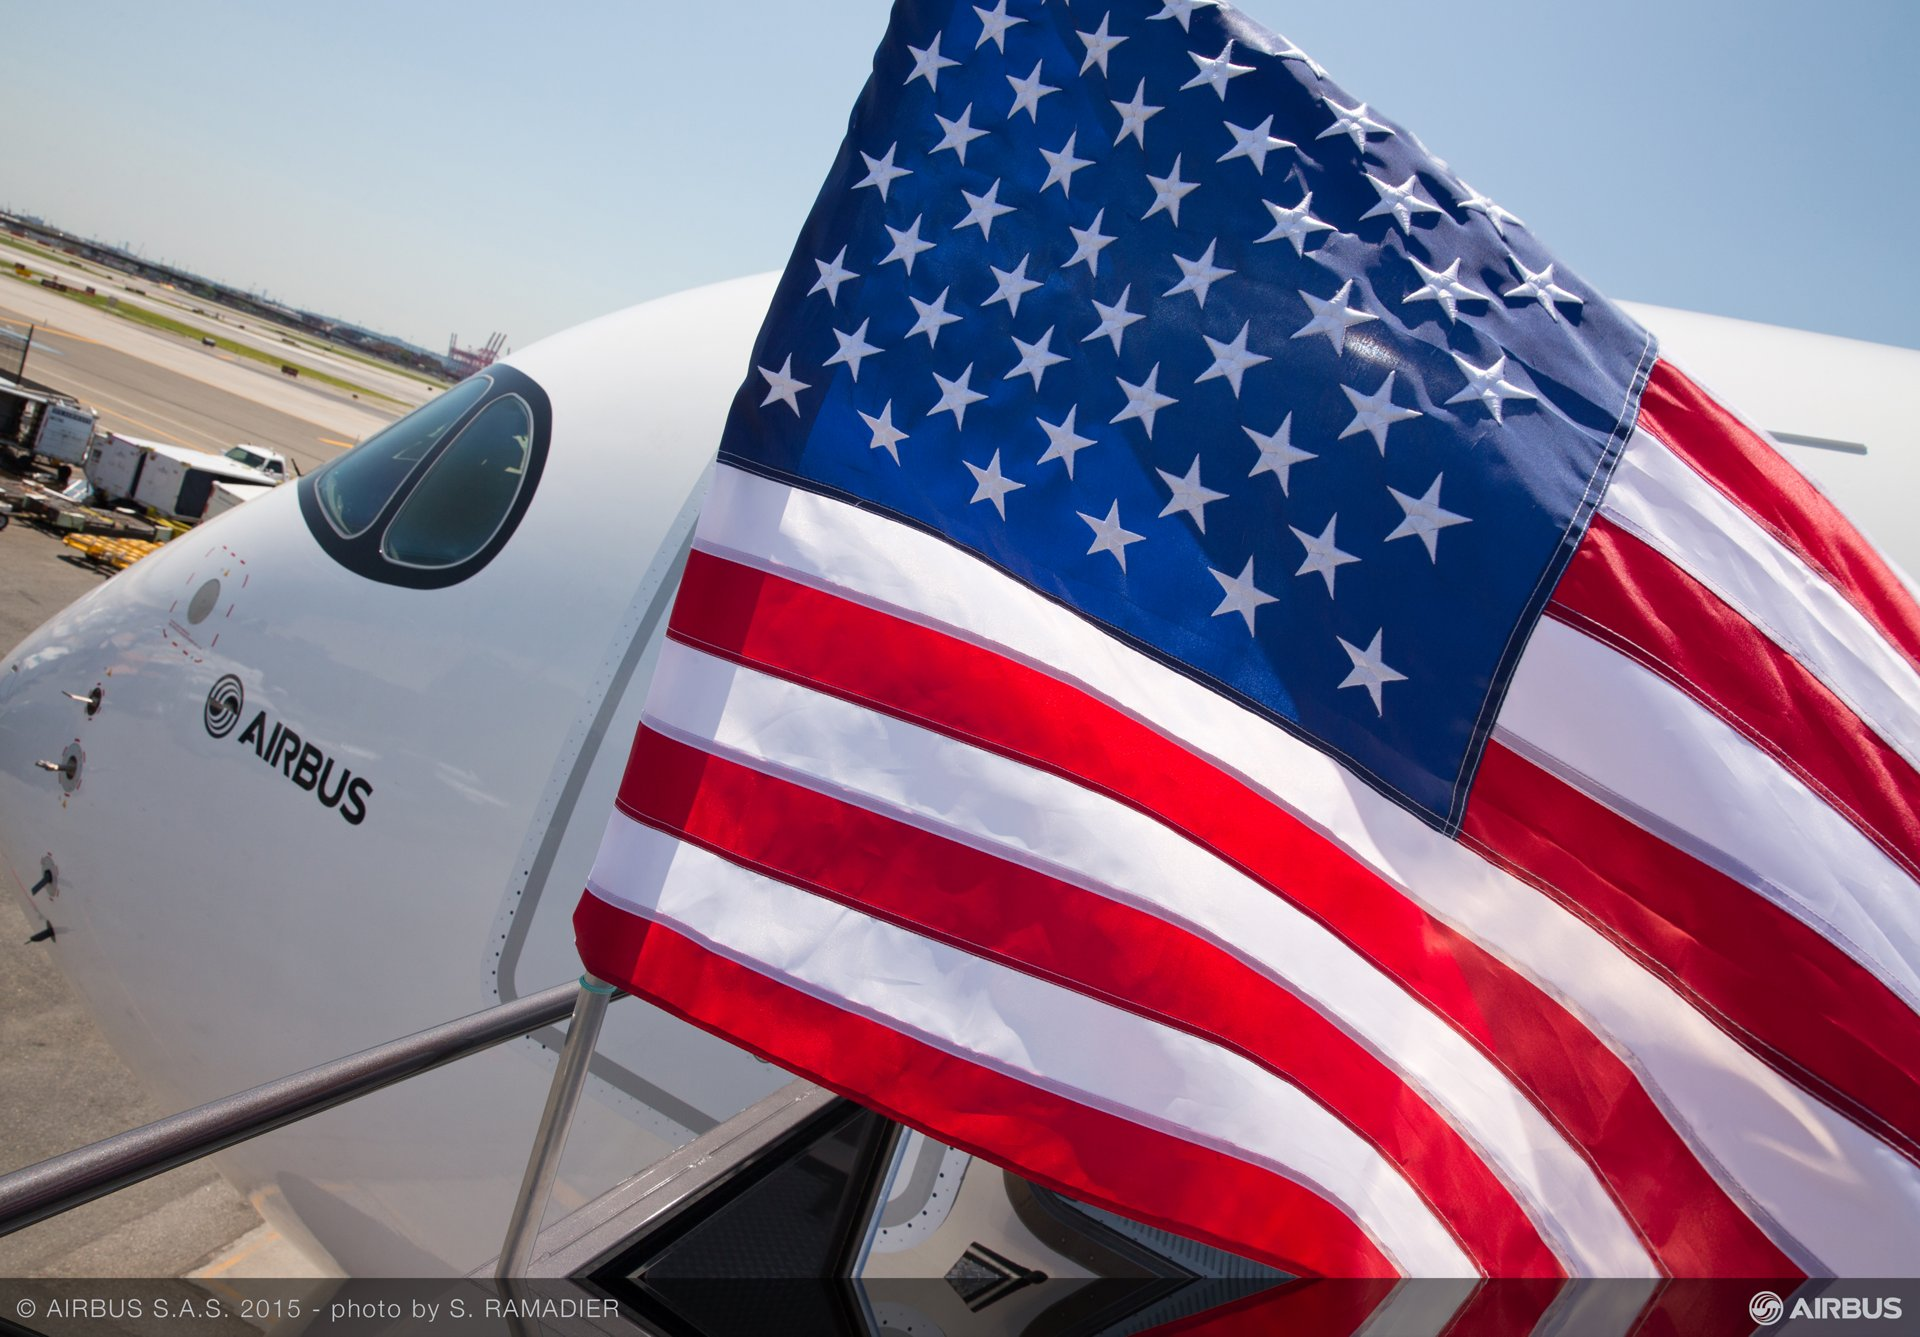 Red, white and blue: Airbus' MSN002 flight test A350 XWB aircraft visits Newark, New Jersey during its demonstration tour in the United States